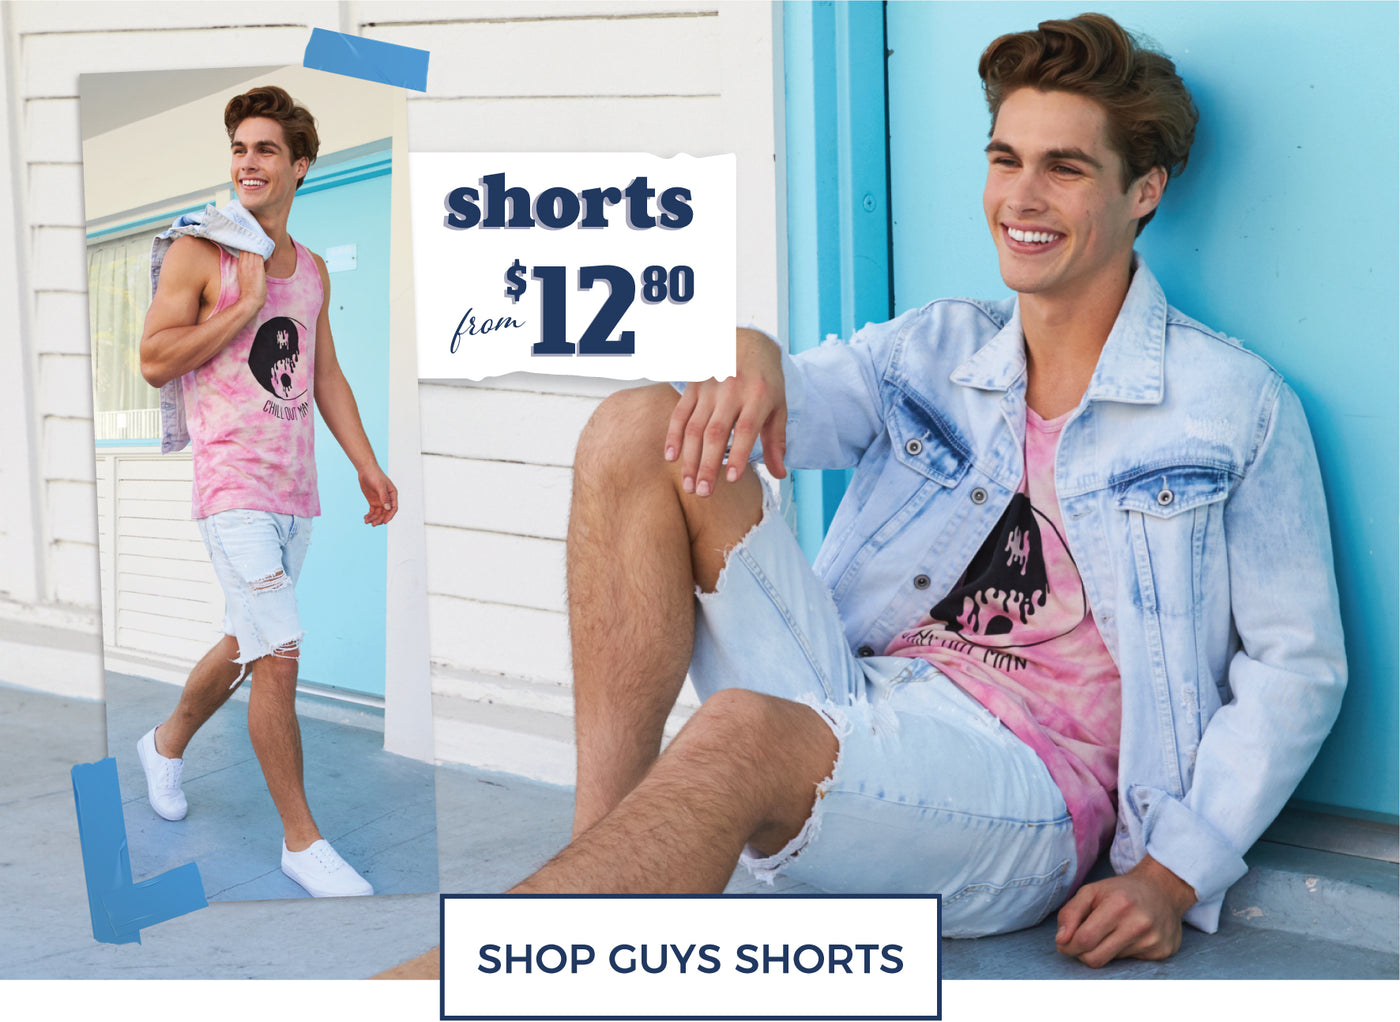 Shorts from $12.80 - Shop Guys Shorts